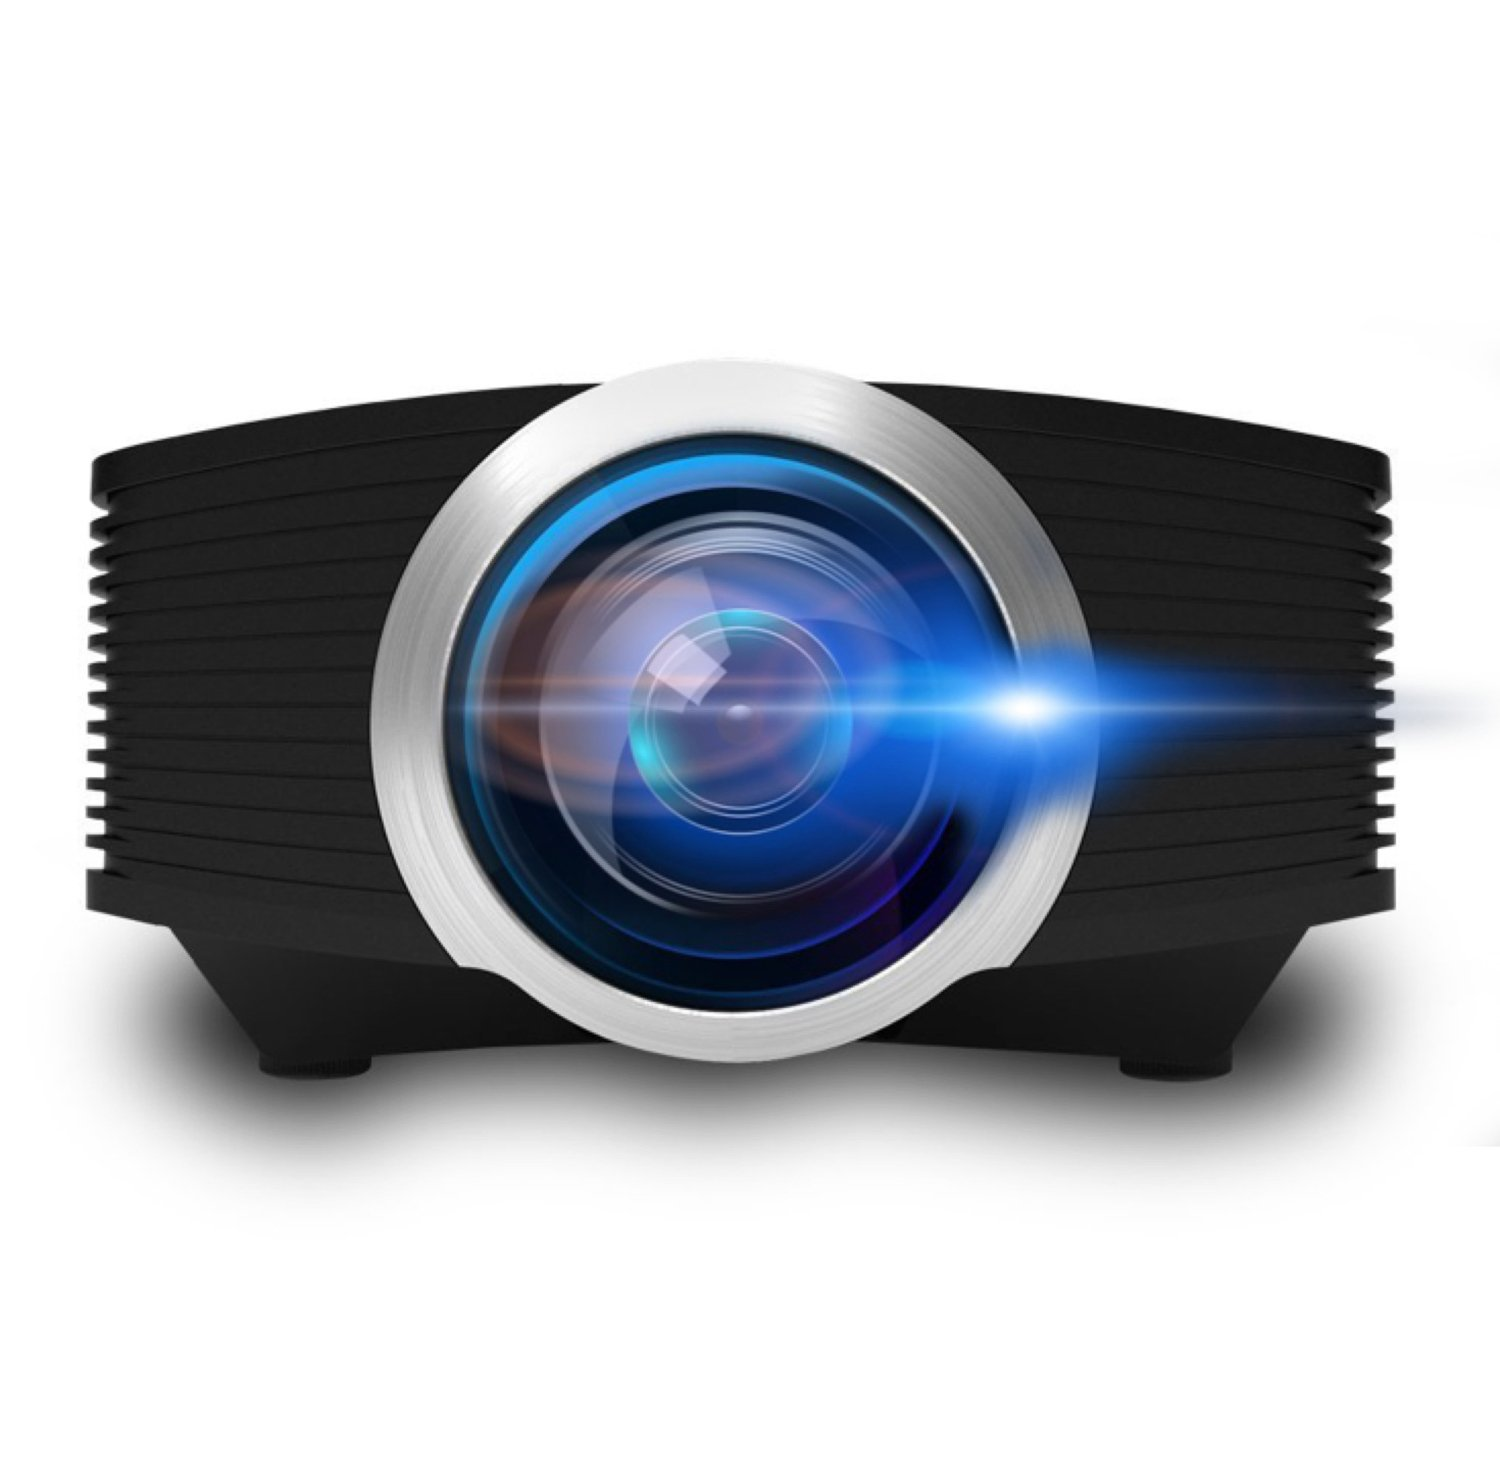 LED Projector, ERISAN Mini Portable Beam Proyetor 1600 Luminous Efficiency Home Cinema Theater Movie Video Projector Support Multimedia HDMI USB for Home Entertainment Games YG501